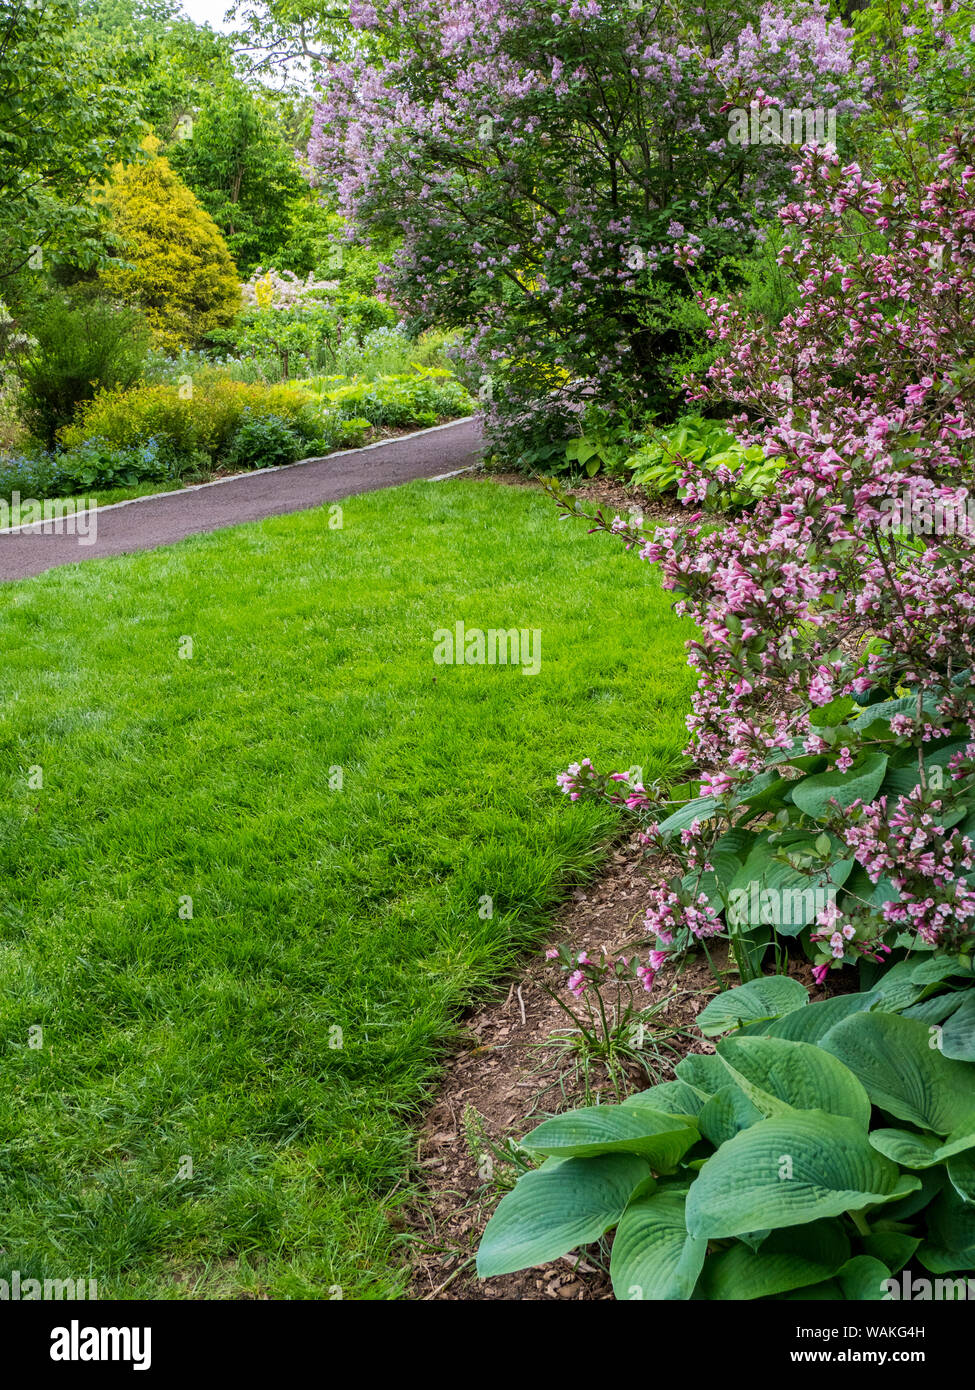 Usa Pennsylvania Pink Flowering Bushes Border A Grassy Lawn In A